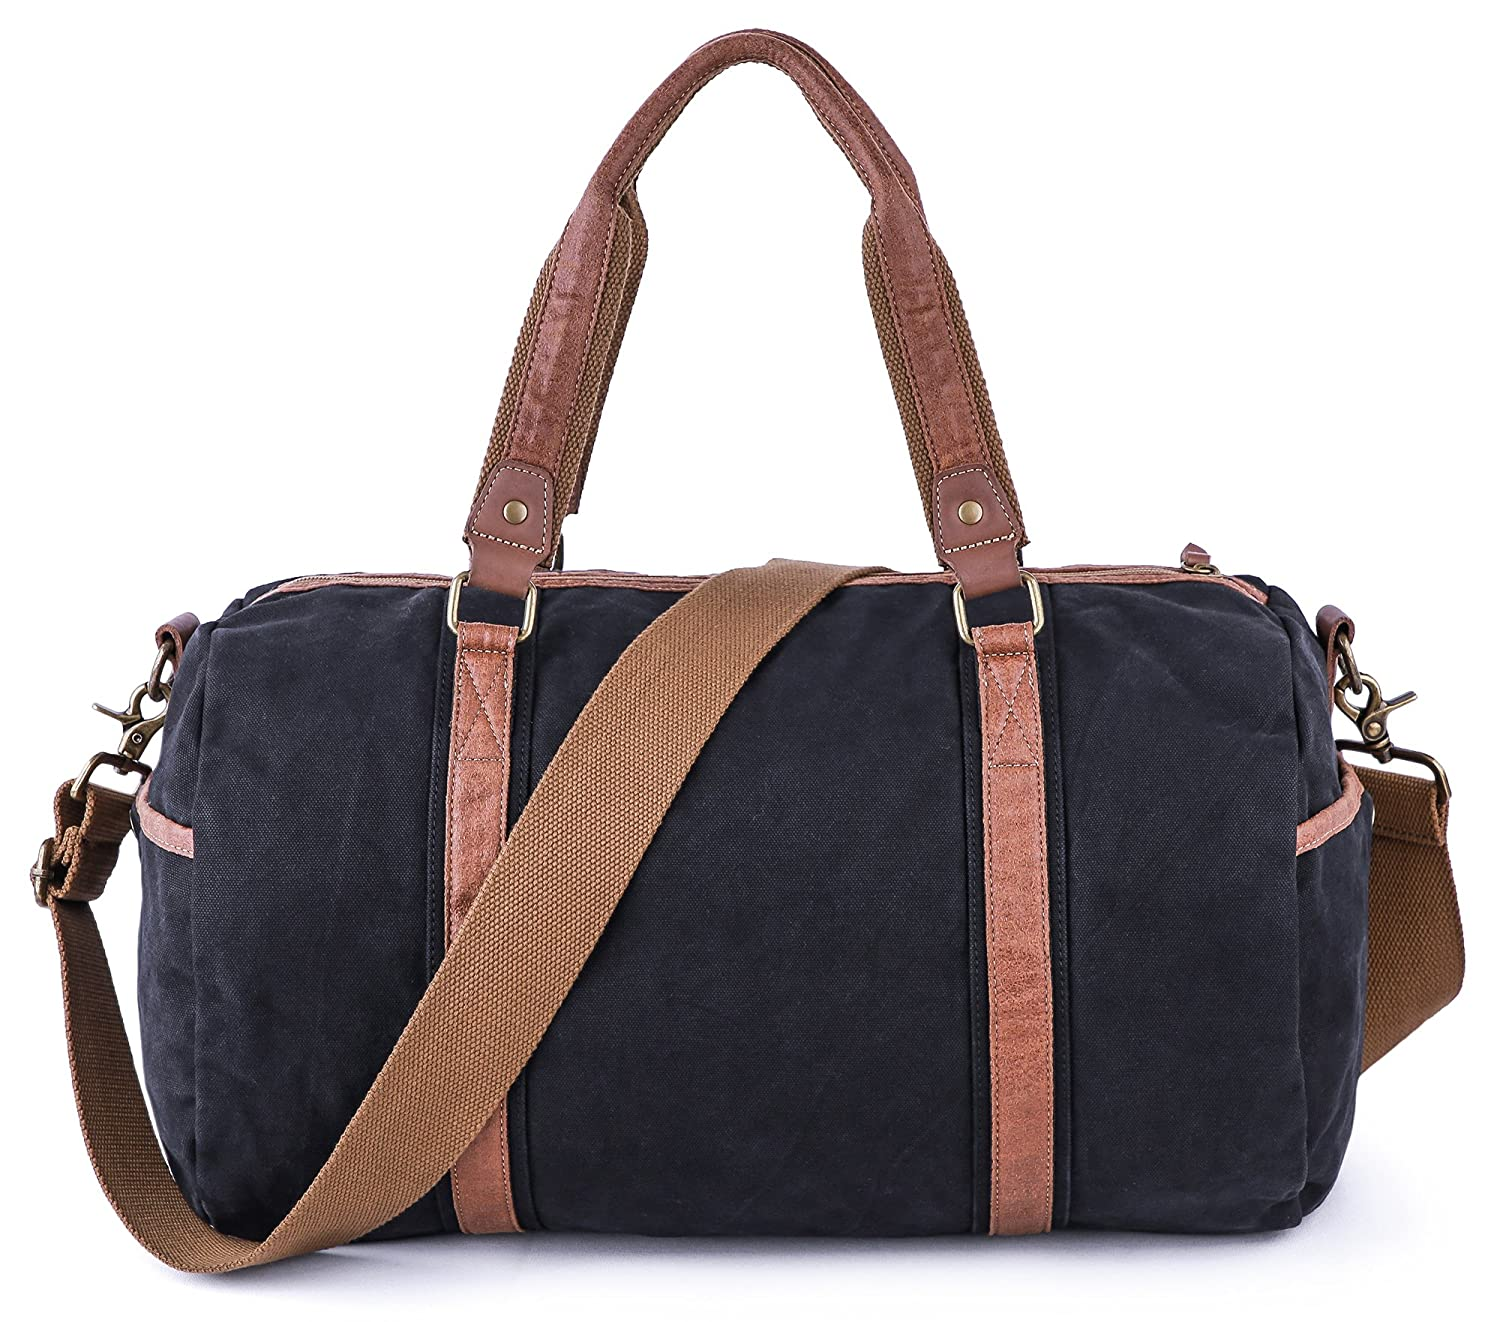 a78e13988ab Amazon.com   Gootium Duffle Bag - Canvas Travel Duffel Weekender Shoulder  Bags Gym Tote   Travel Duffels